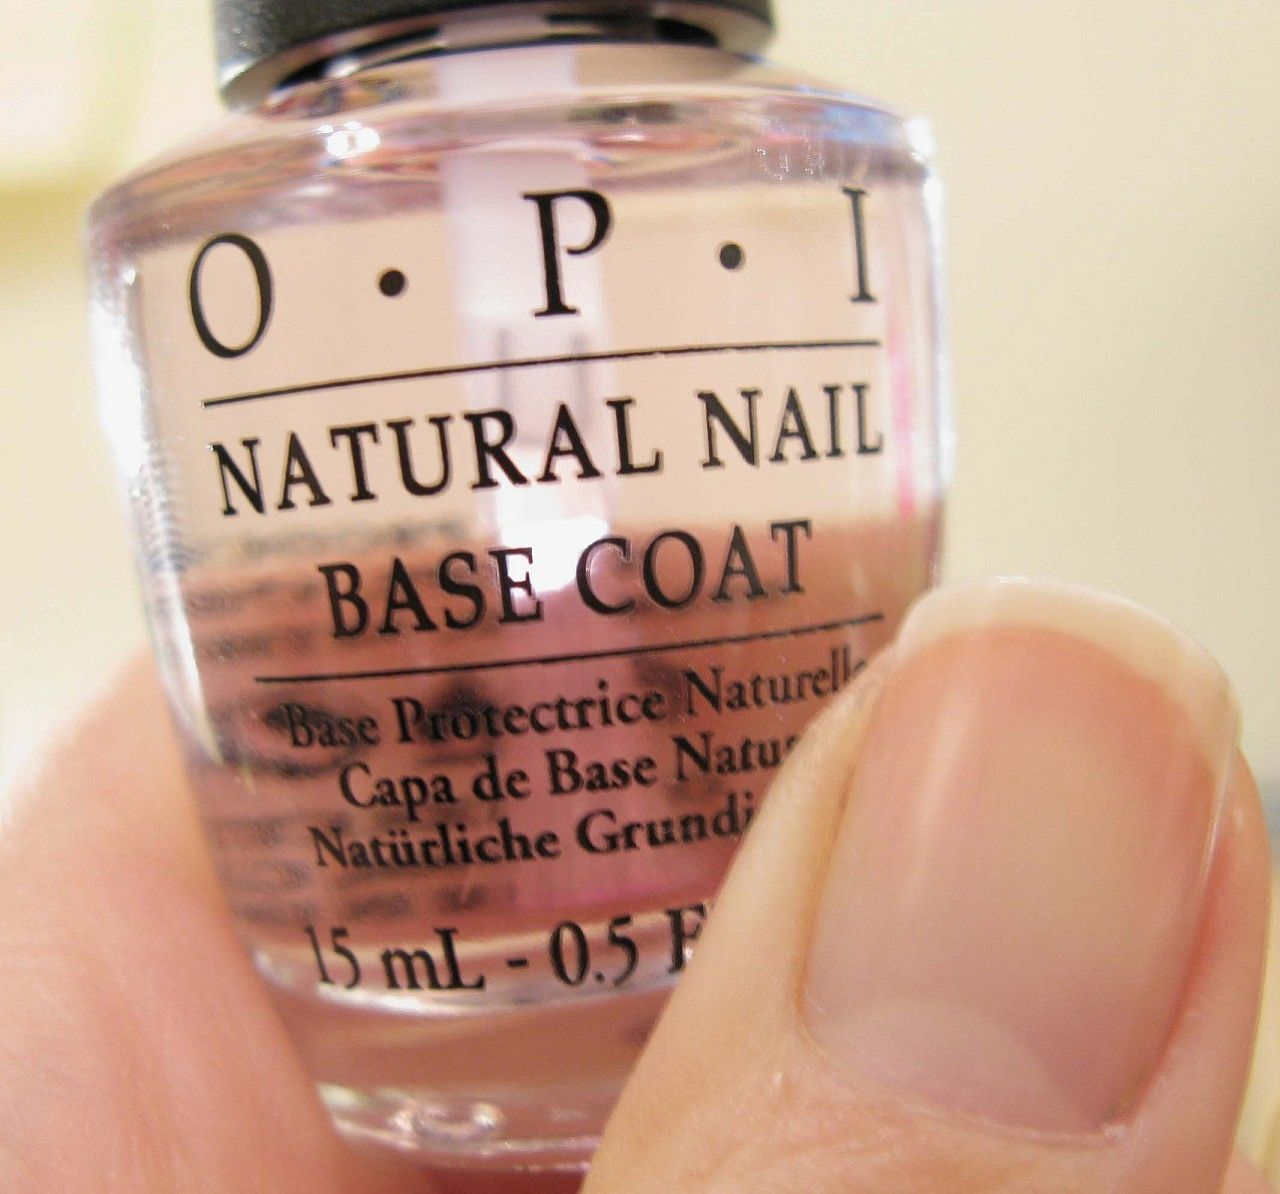 OPI NATURAL NAIL BASE COAT: 1) creates a smooth base; 2) fast drying ...